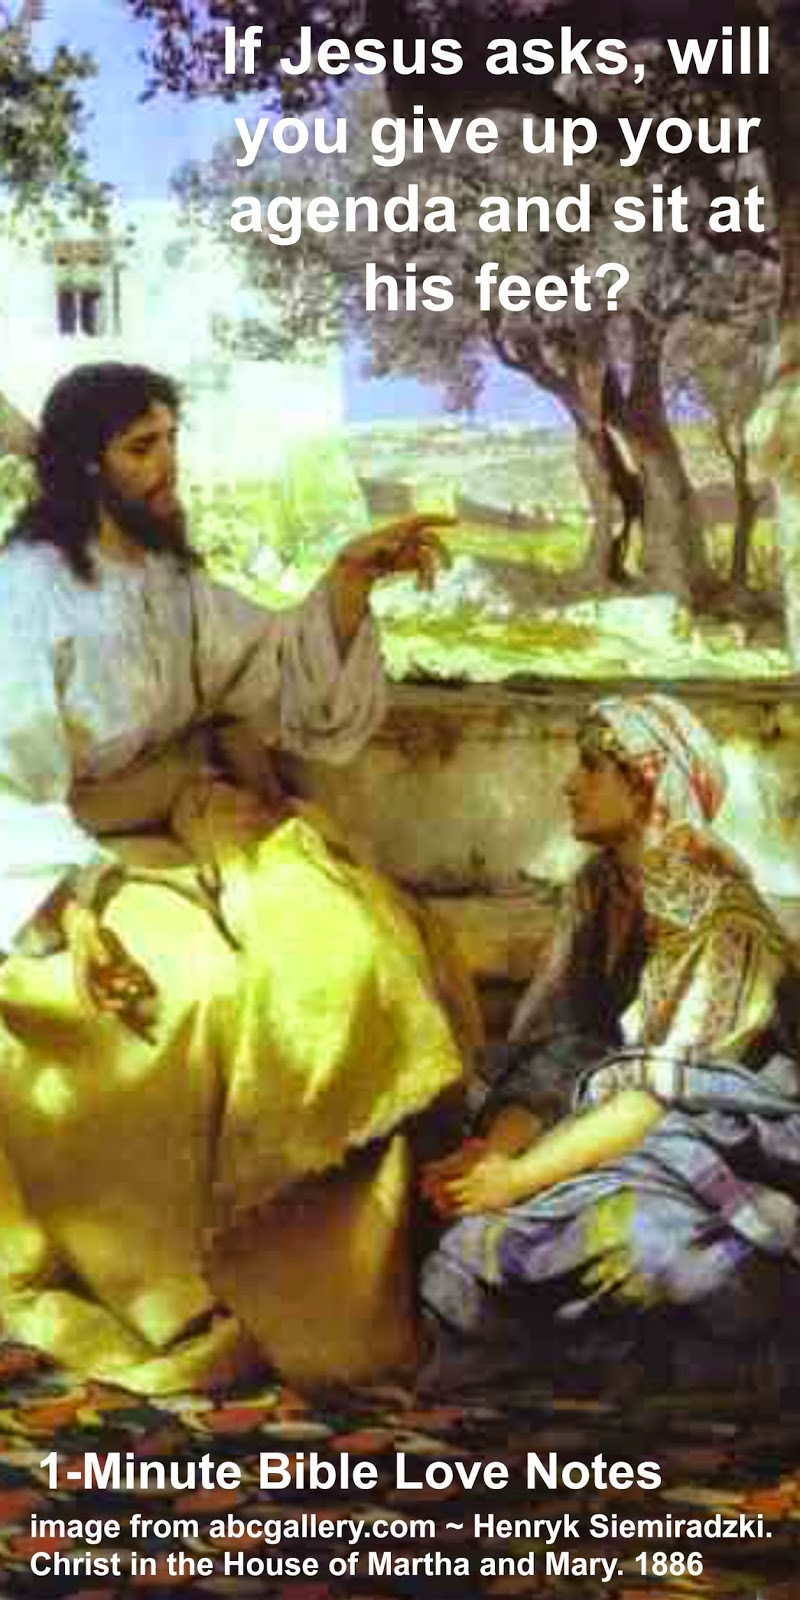 mary and martha, Luke 10, sitting at Jesus feet